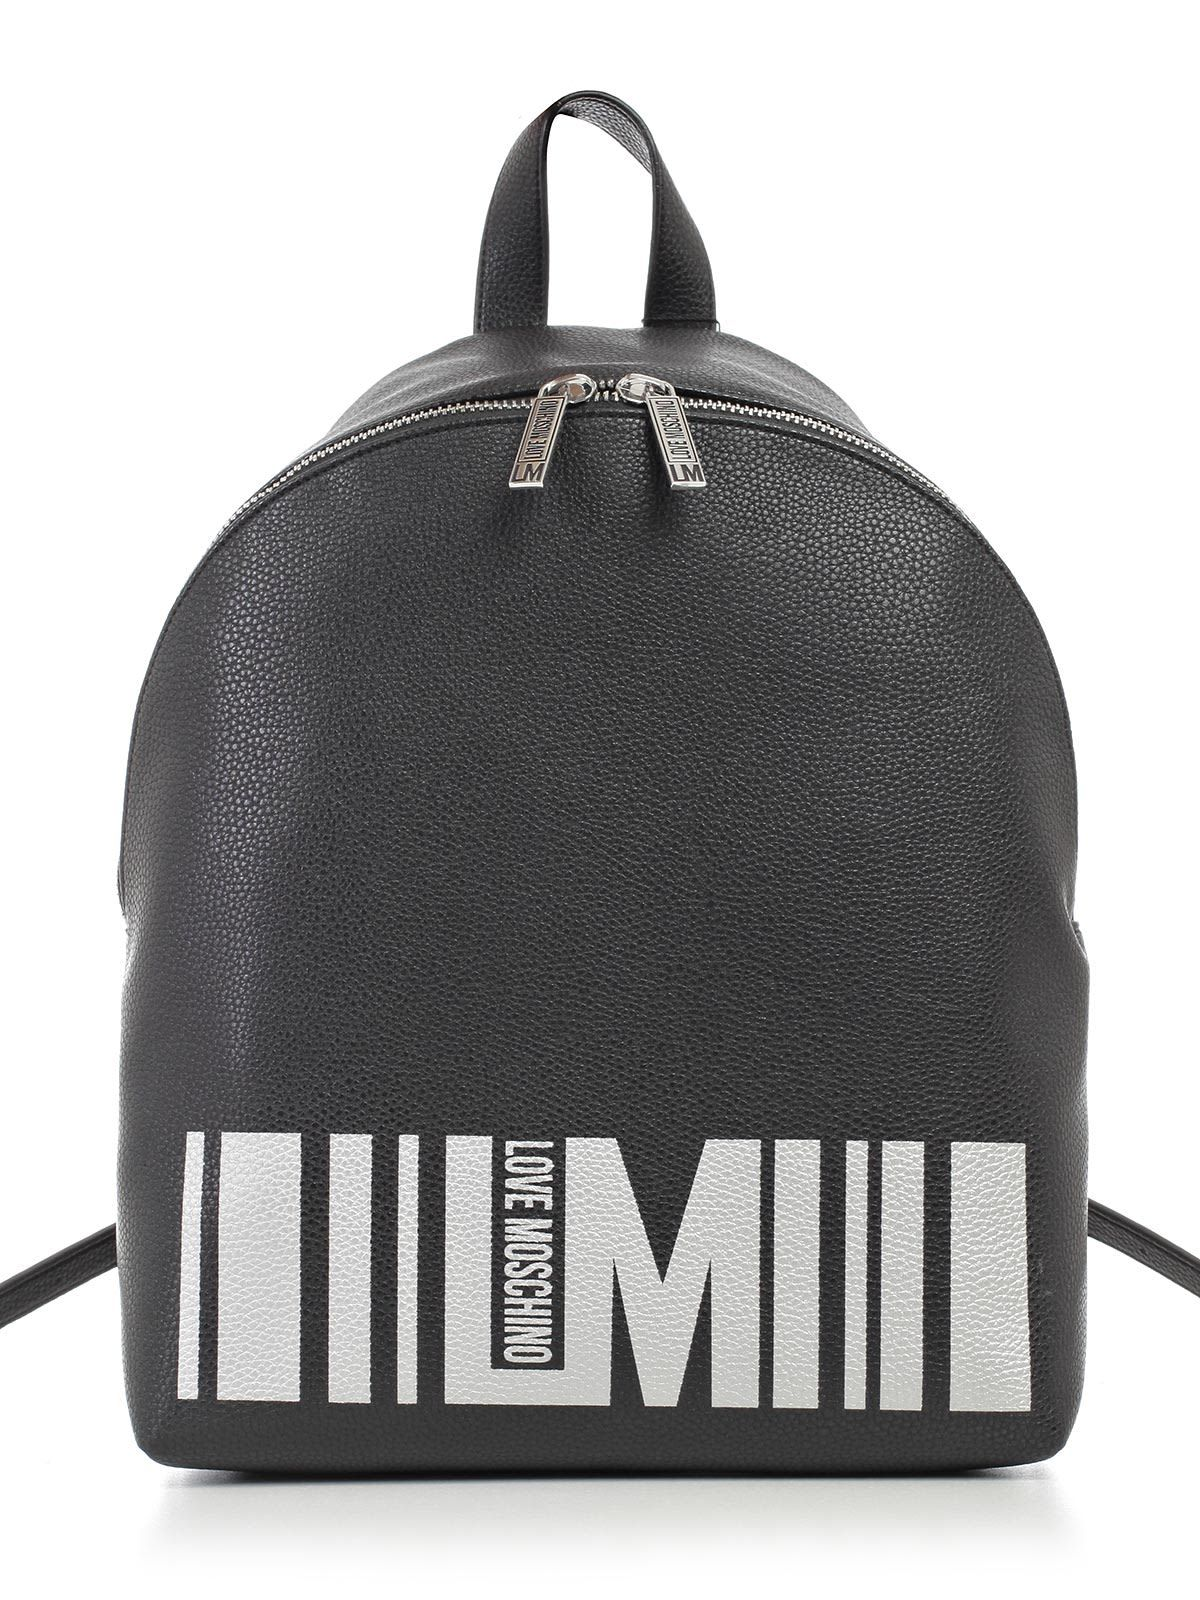 706177346295 LOVE MOSCHINO LOVE MOSCHINO BACKPACK.  lovemoschino  bags  leather   backpacks